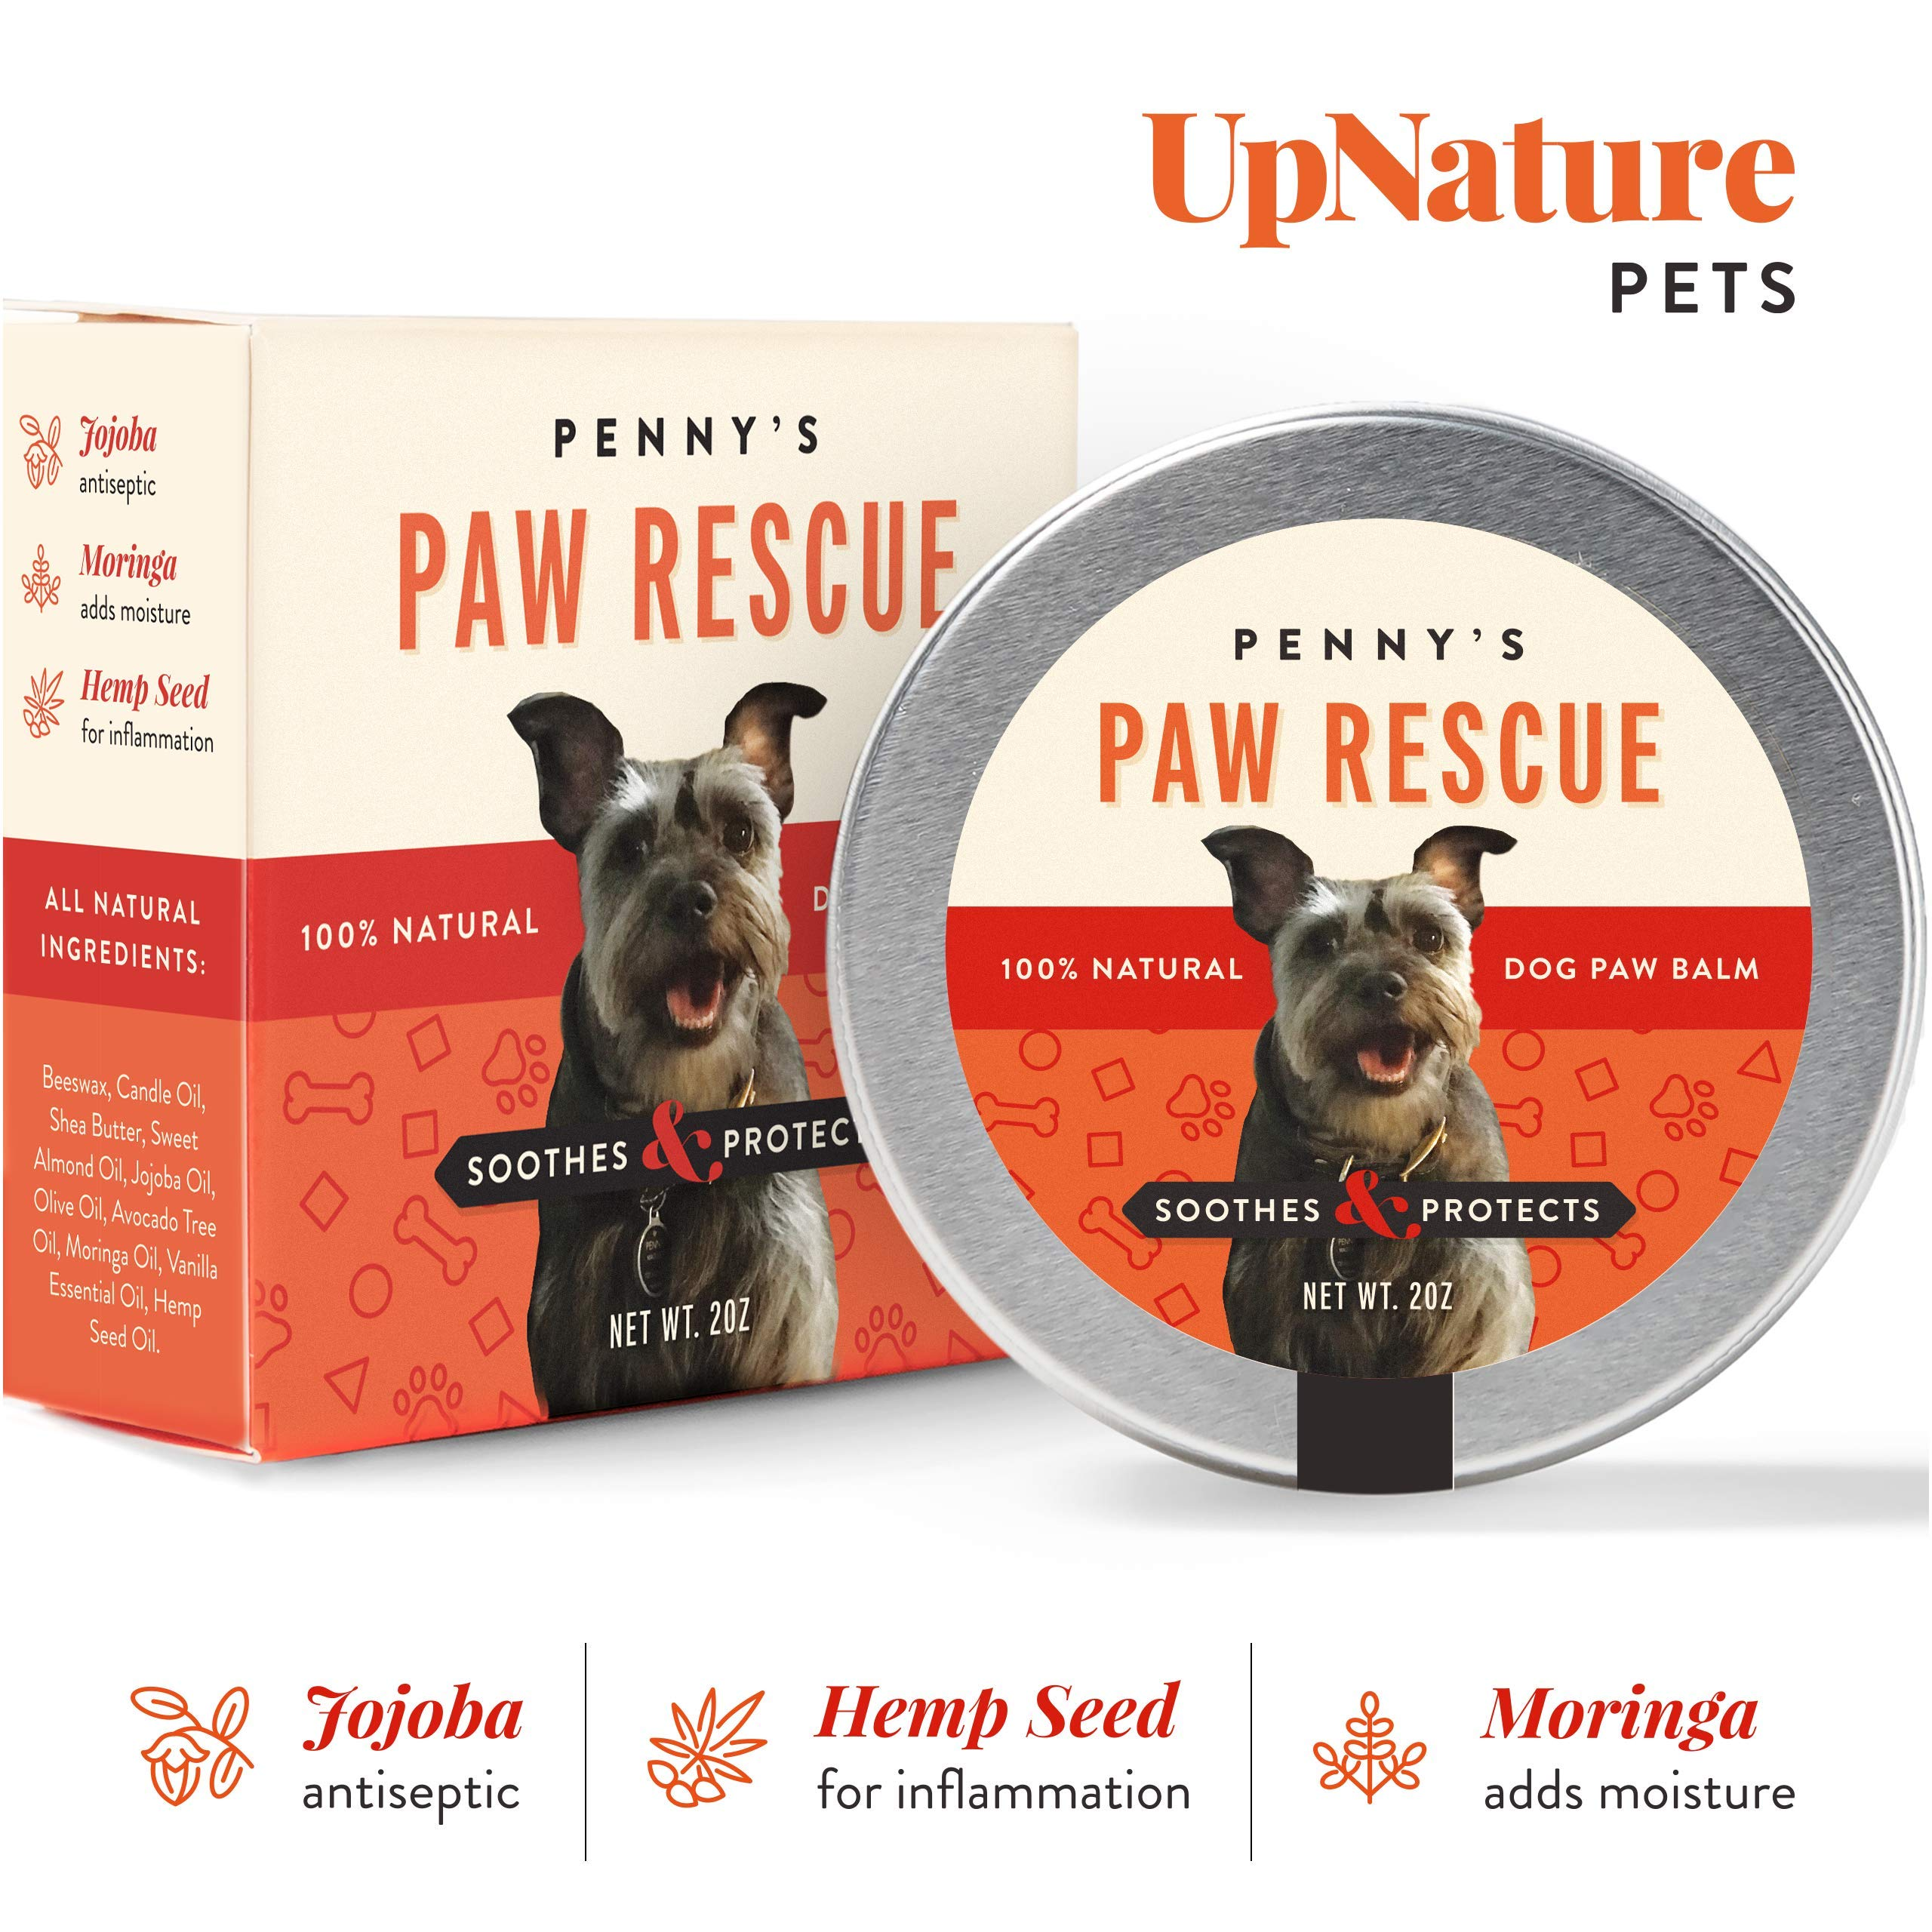 Penny's Paw Rescue – 100% Natural Dog Paw Balm – Relief from Heat, Cold, Allergens & Rough Terrain – Dog Paw Protection…